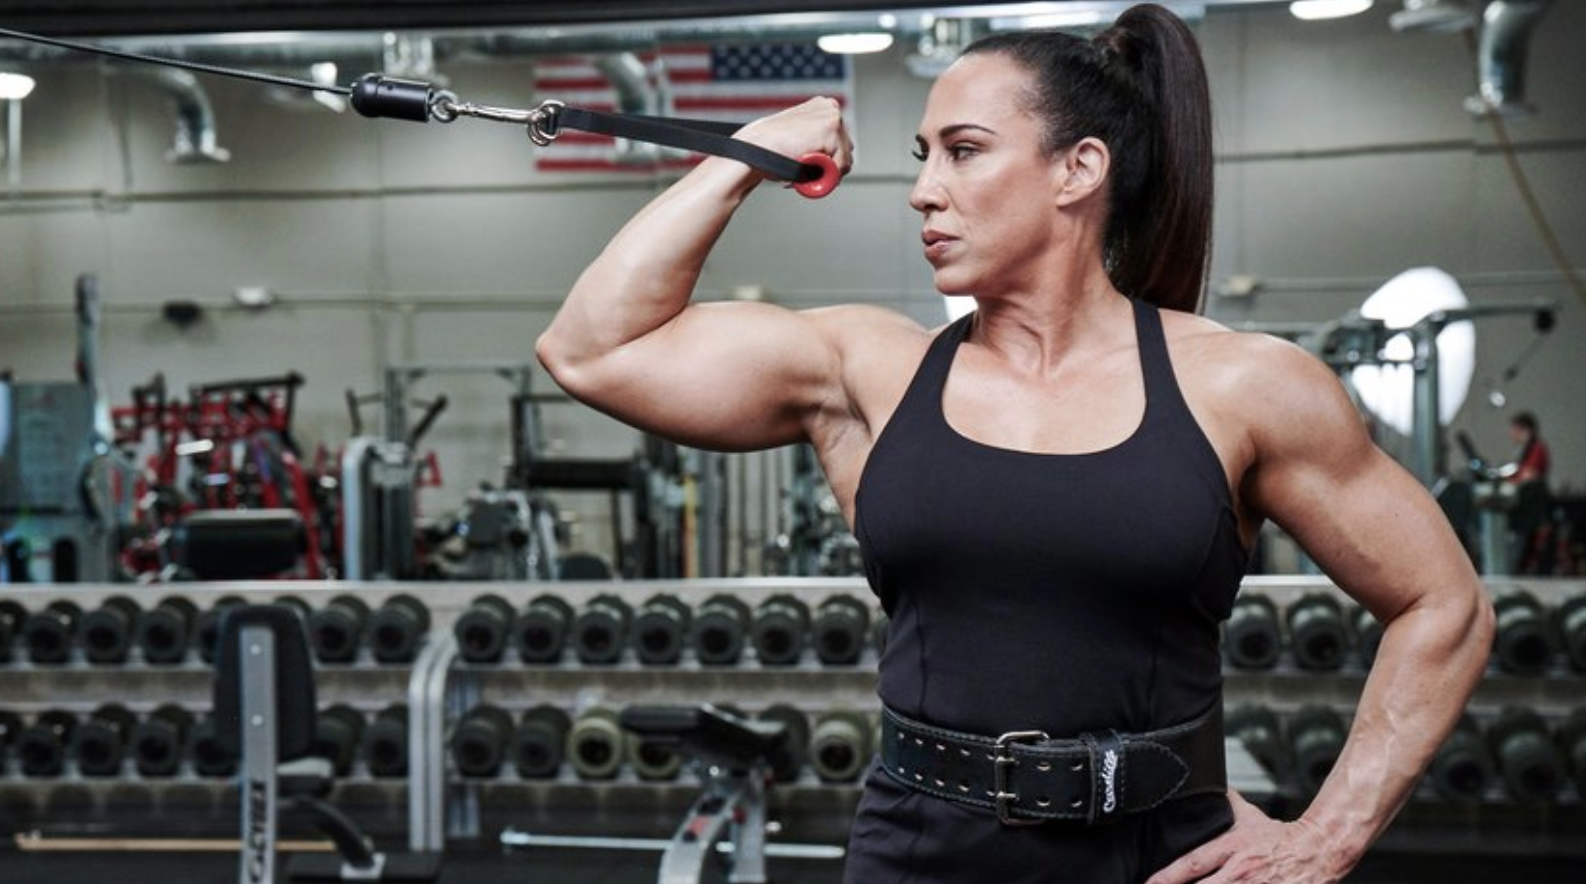 Bodybuilding.com Discovers How Dany Garcia Built Her Body and an Empire